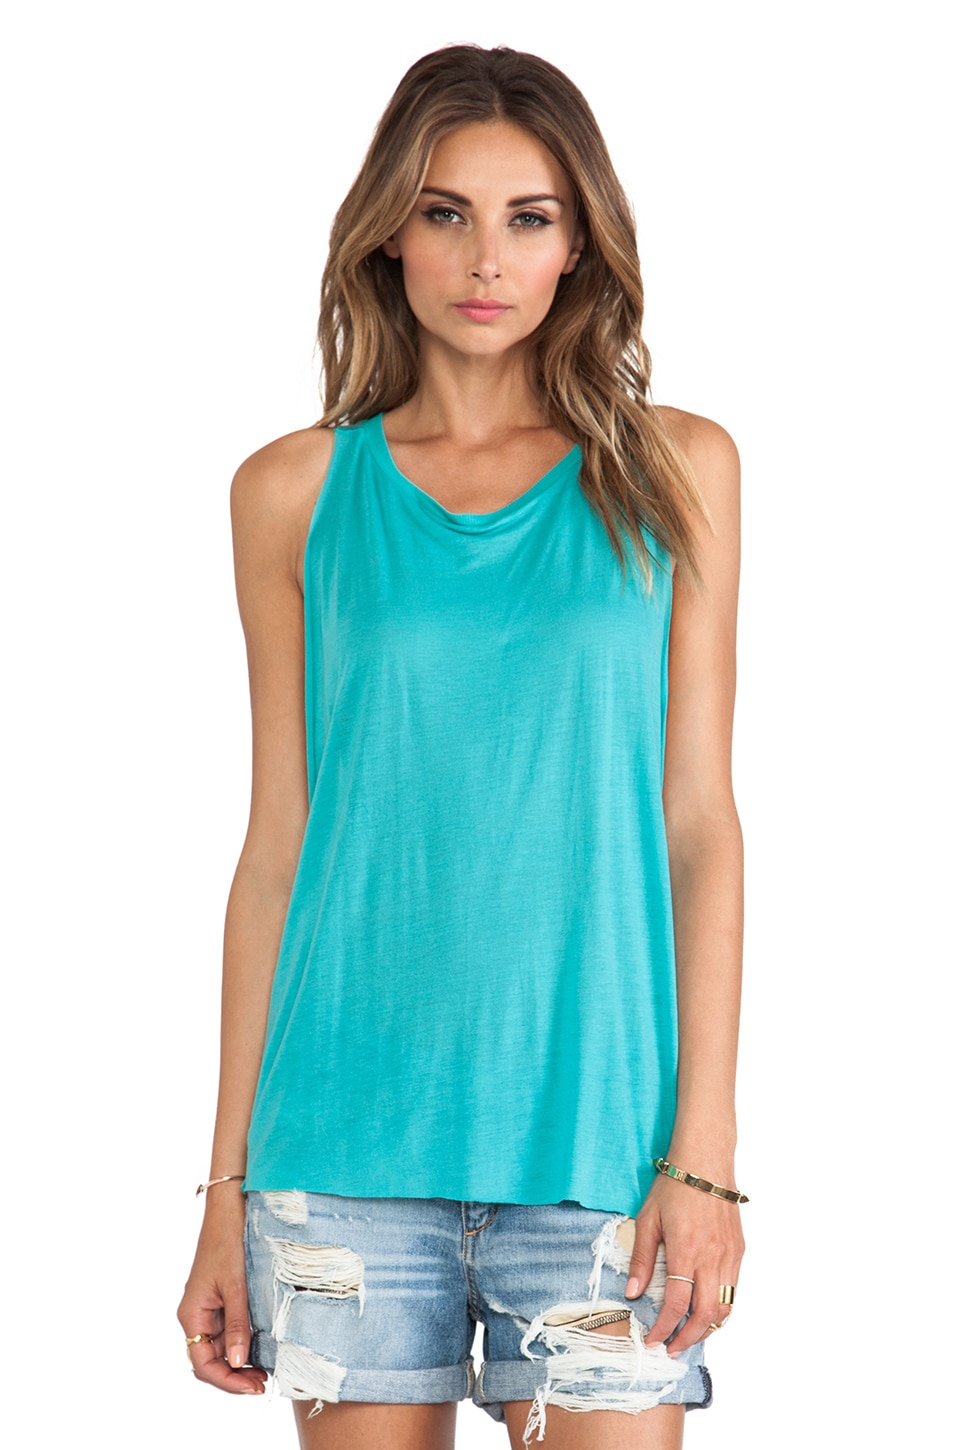 Blue Life Wild And Free Muscle Tee in Mint